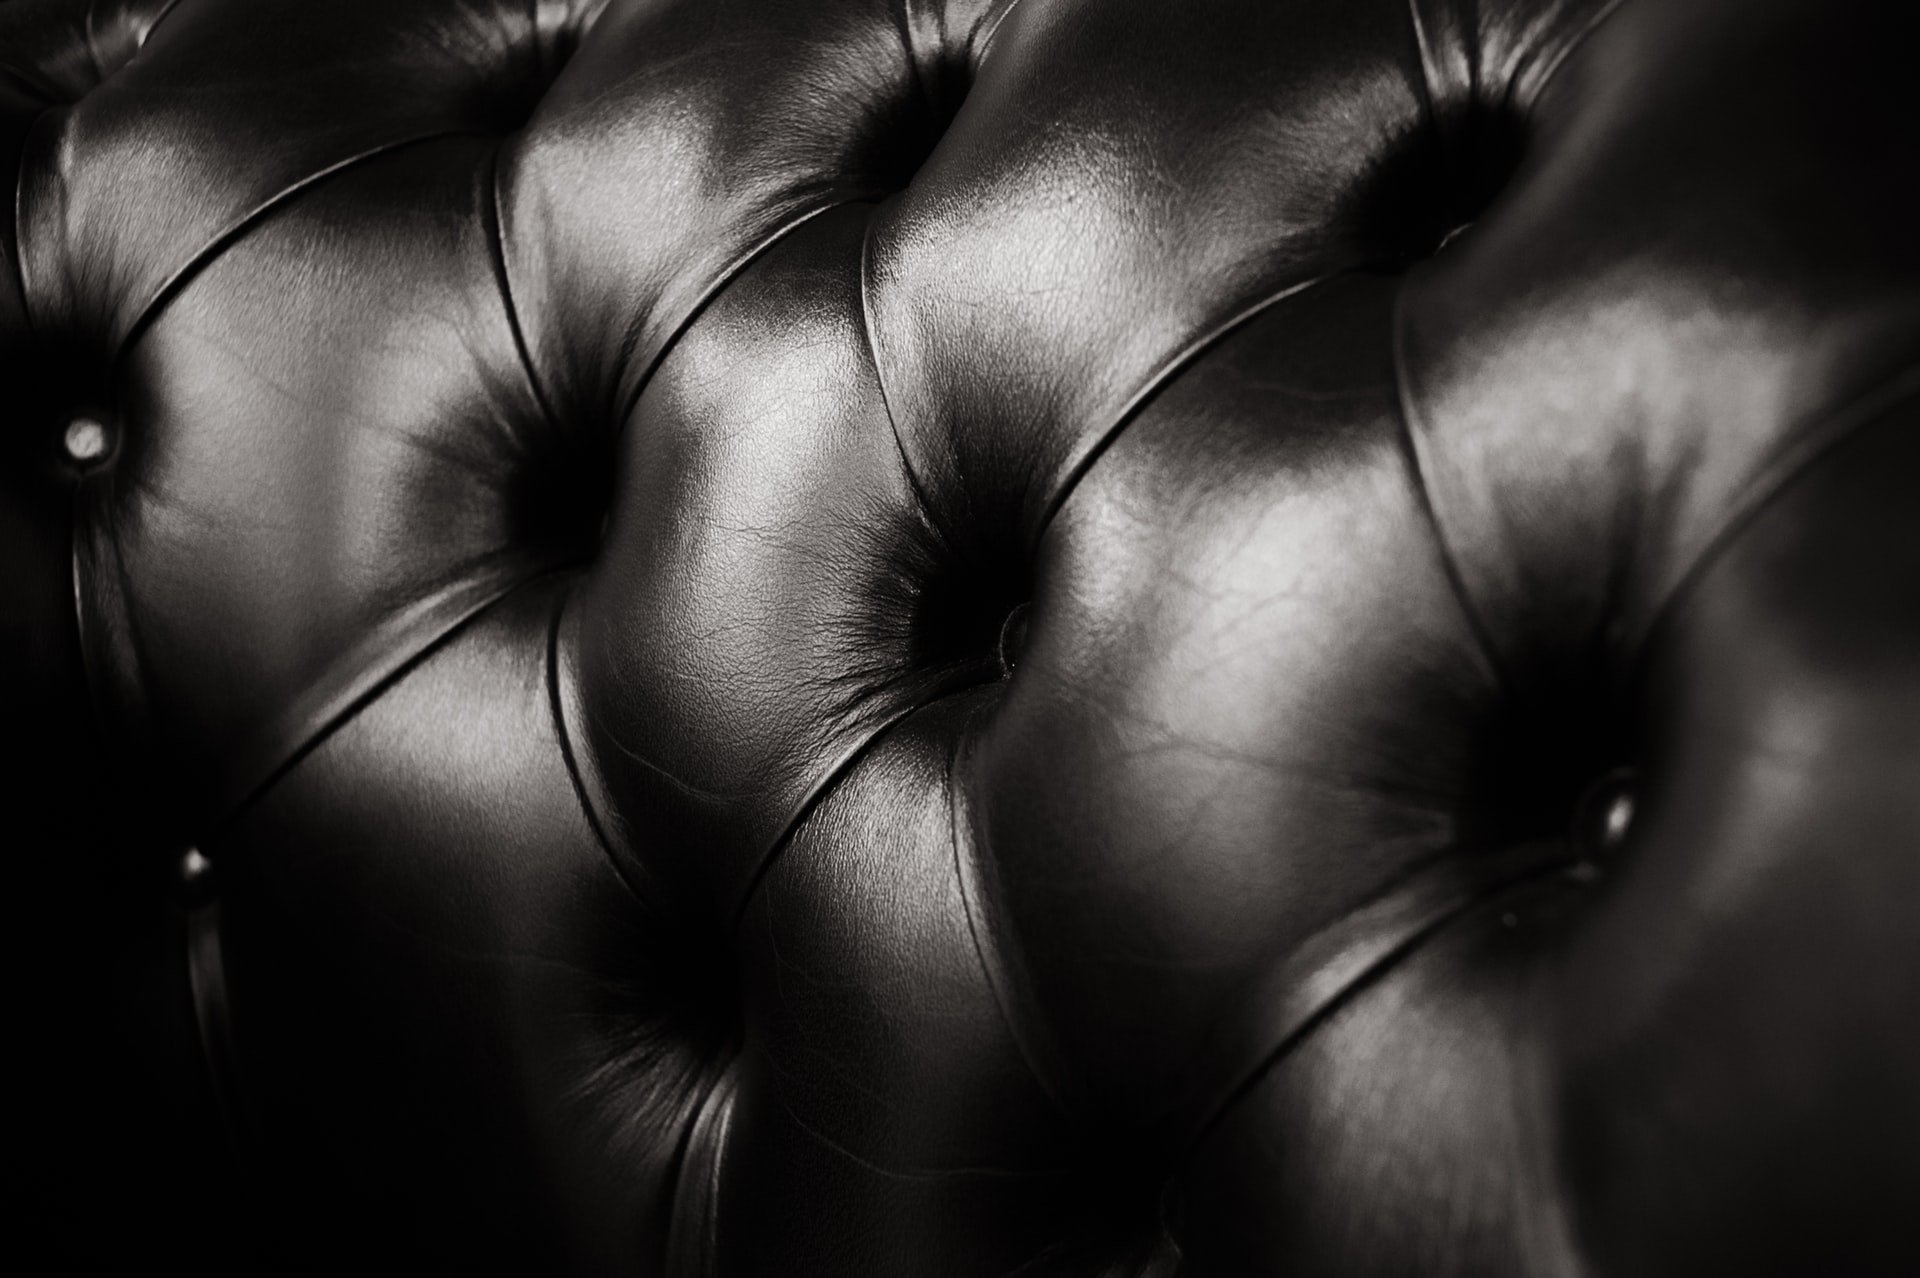 Packing leather furniture